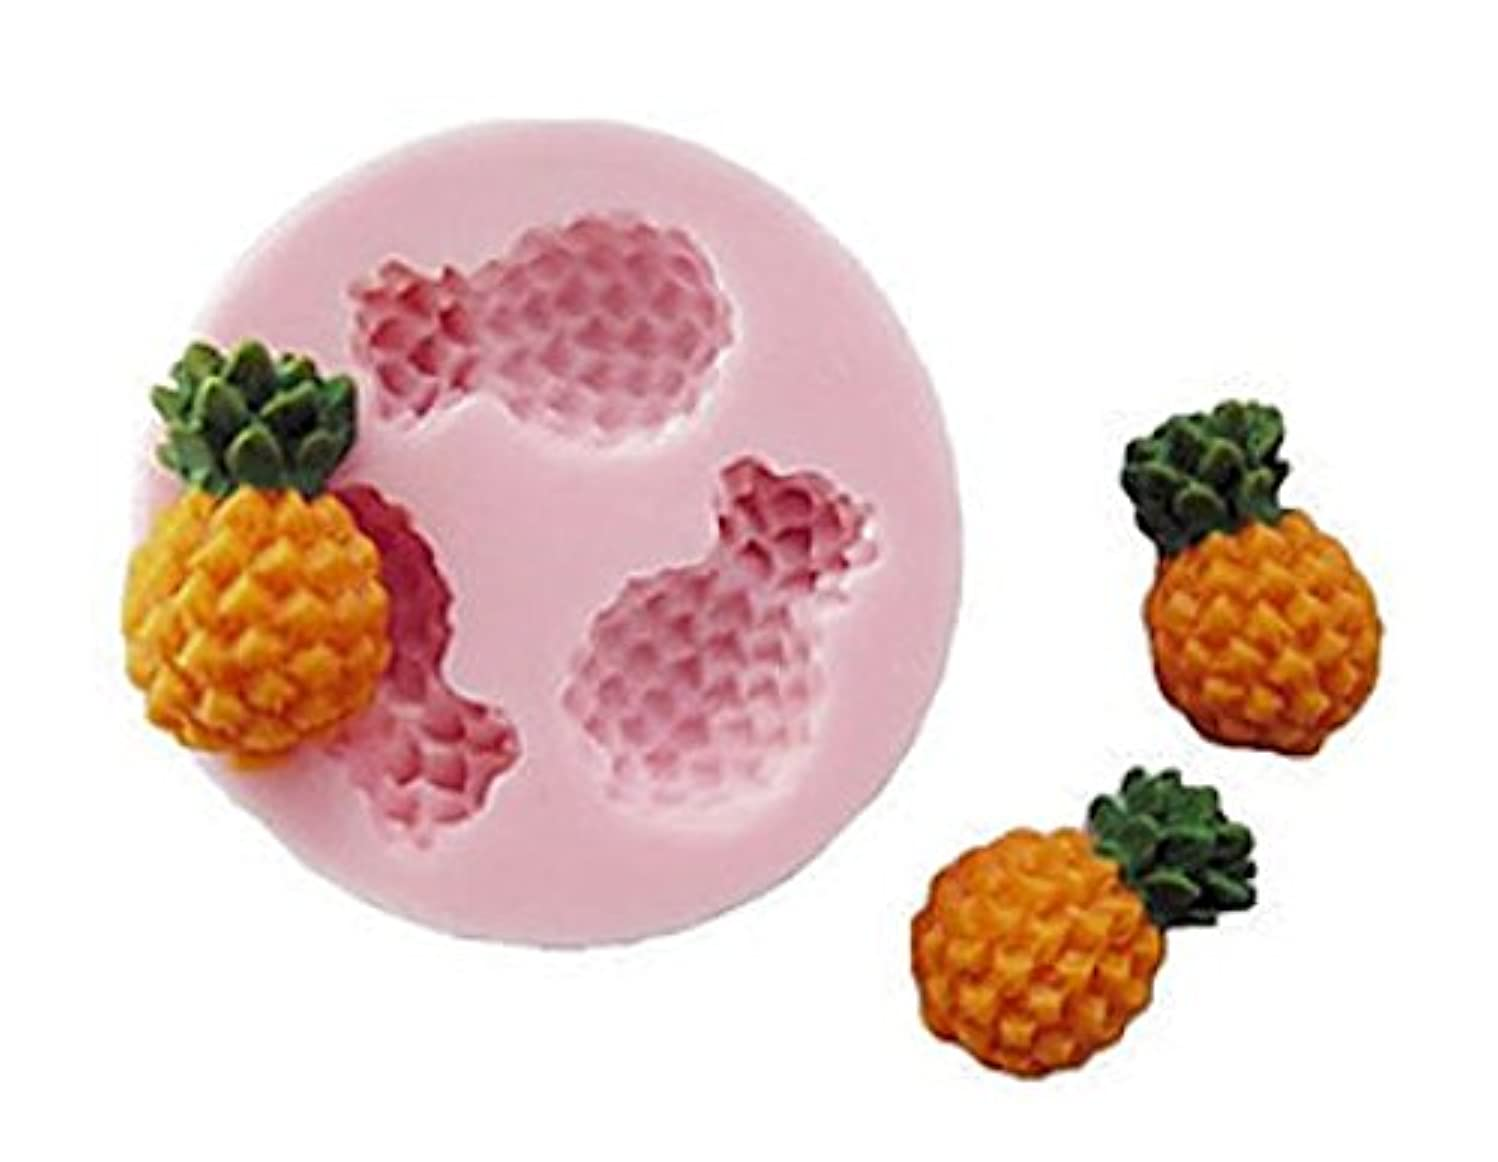 Pineapple 3 Cavity Mini Silicone Mold for Fondant, Gum Paste, Chocolate